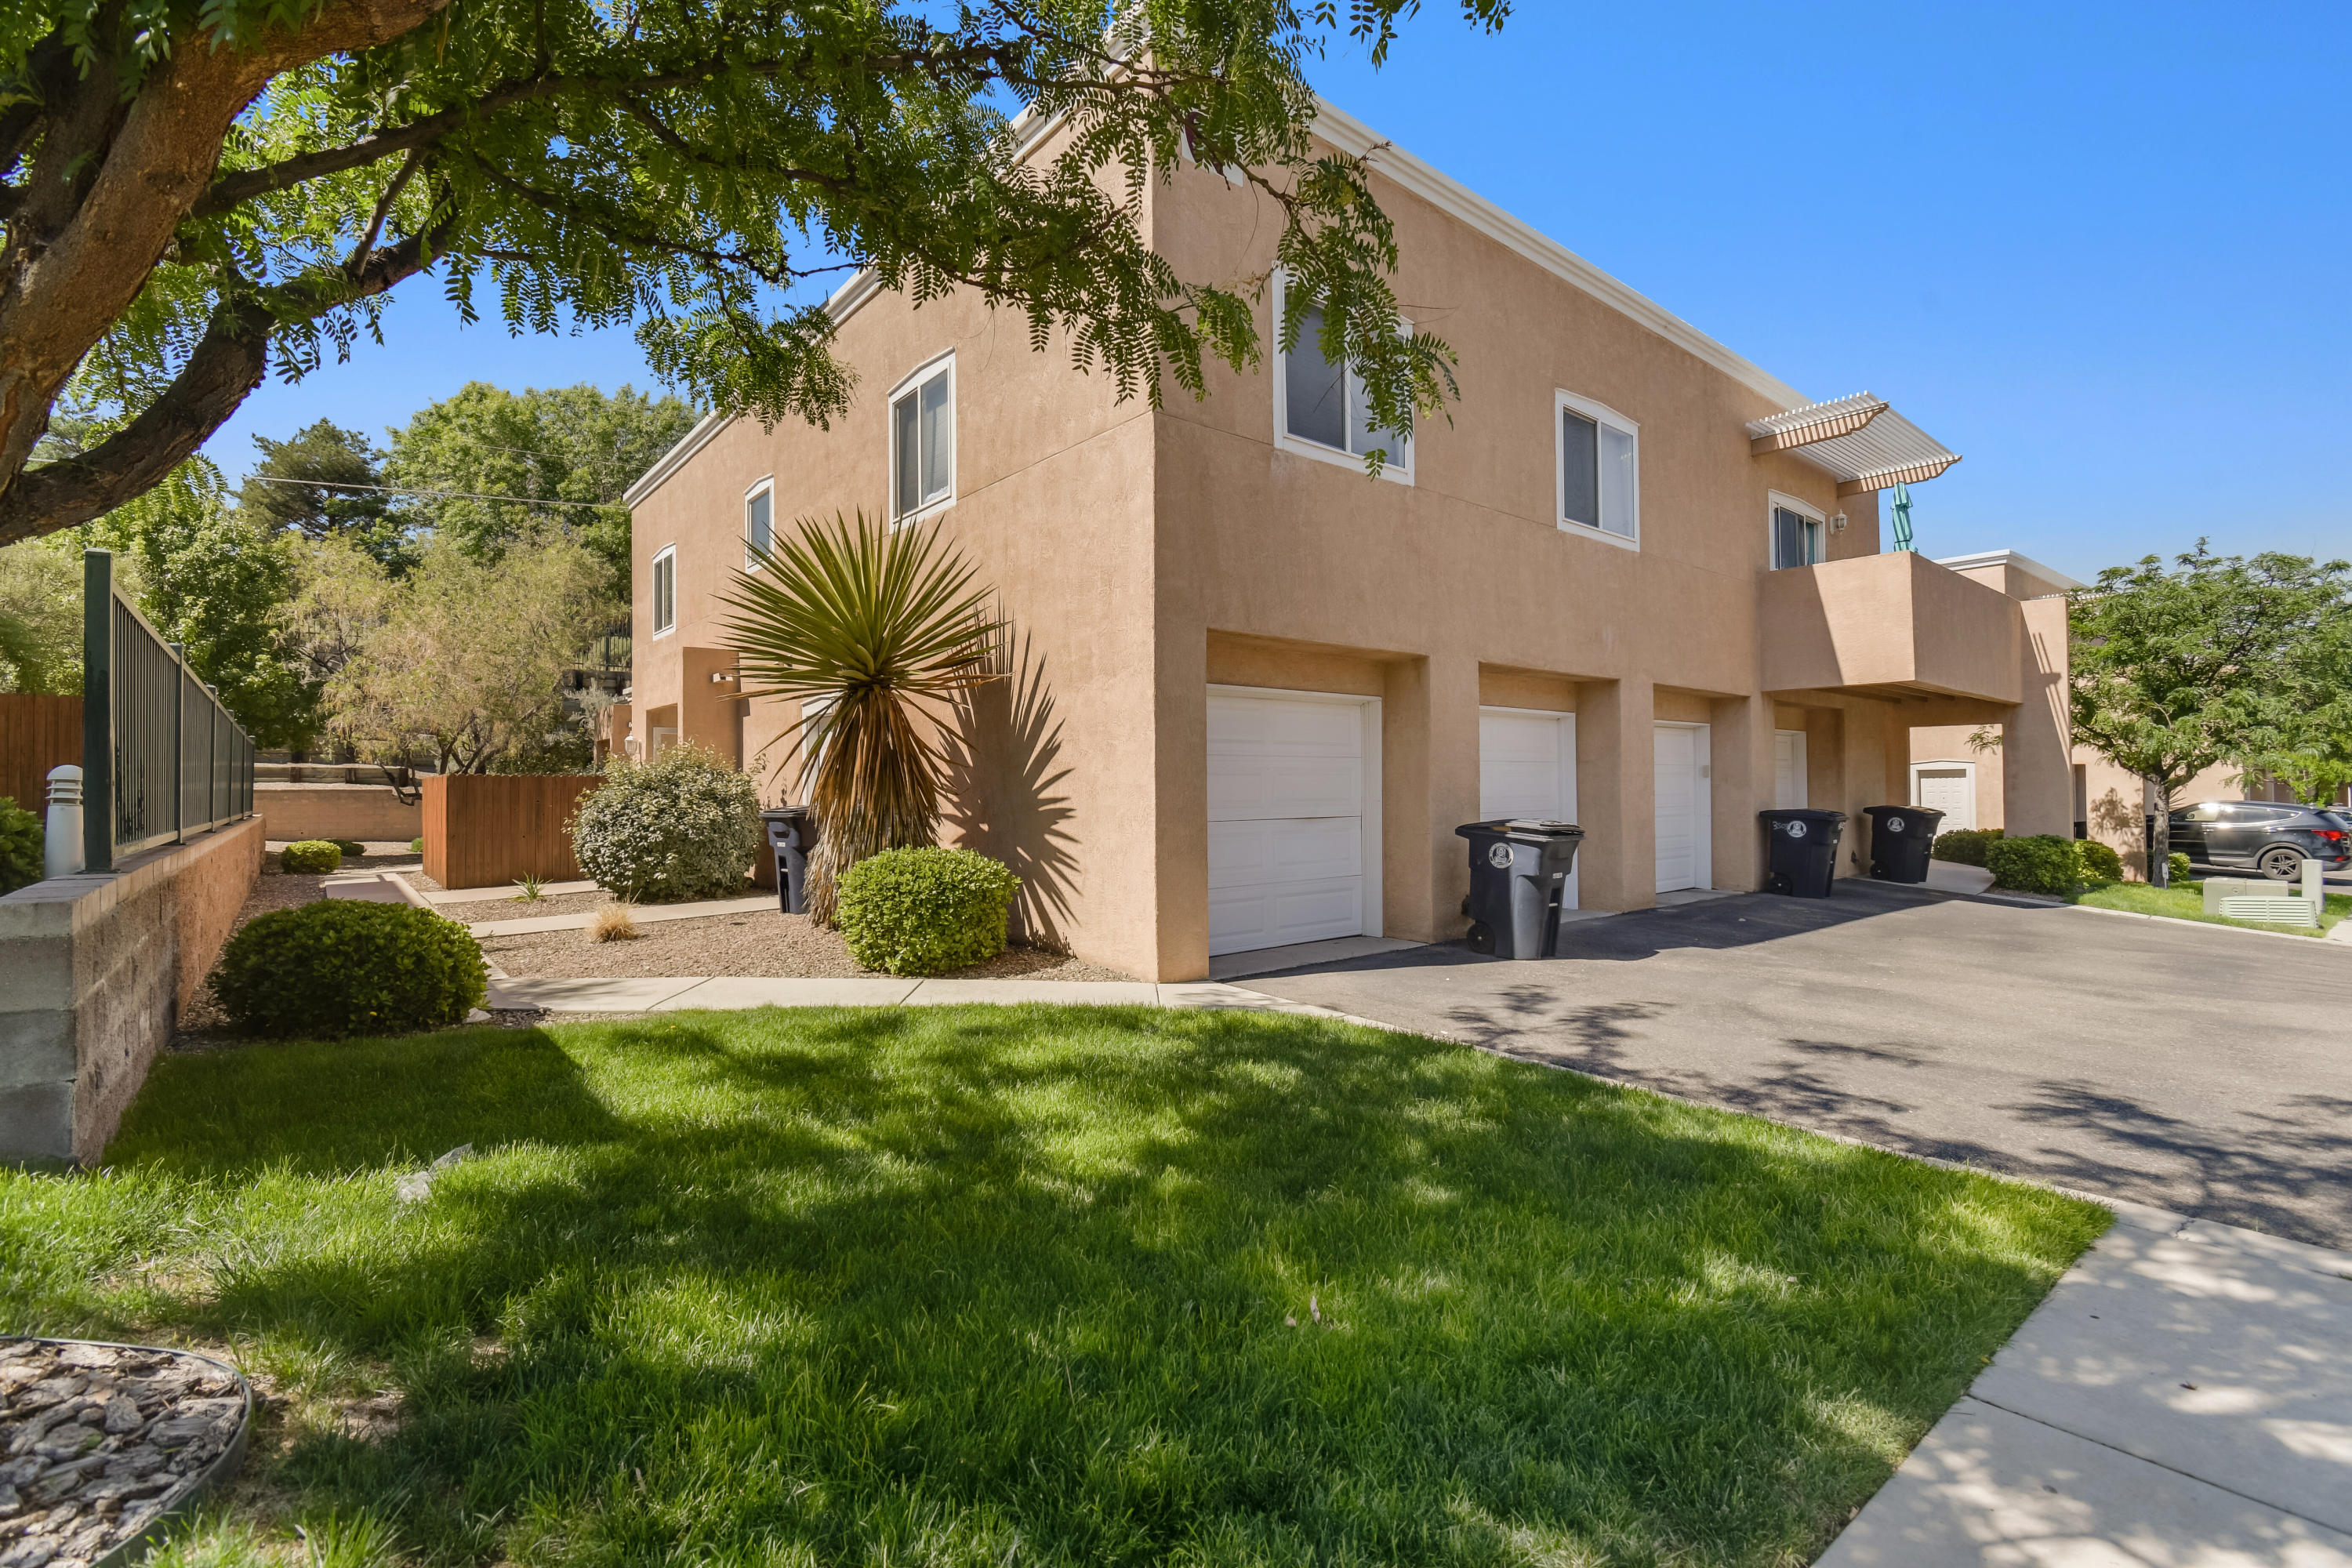 This lovely 2 bedroom condo is located in the heart of the NE heights, close to parks, restaurants, hiking trails, and night life. Condo features  new laminate flooring and carpet, new fans and window coverings with fresh paint and stain on the gate and outside trim. located in the gated Oso Park Community for added security. Don't let this one slip by!!